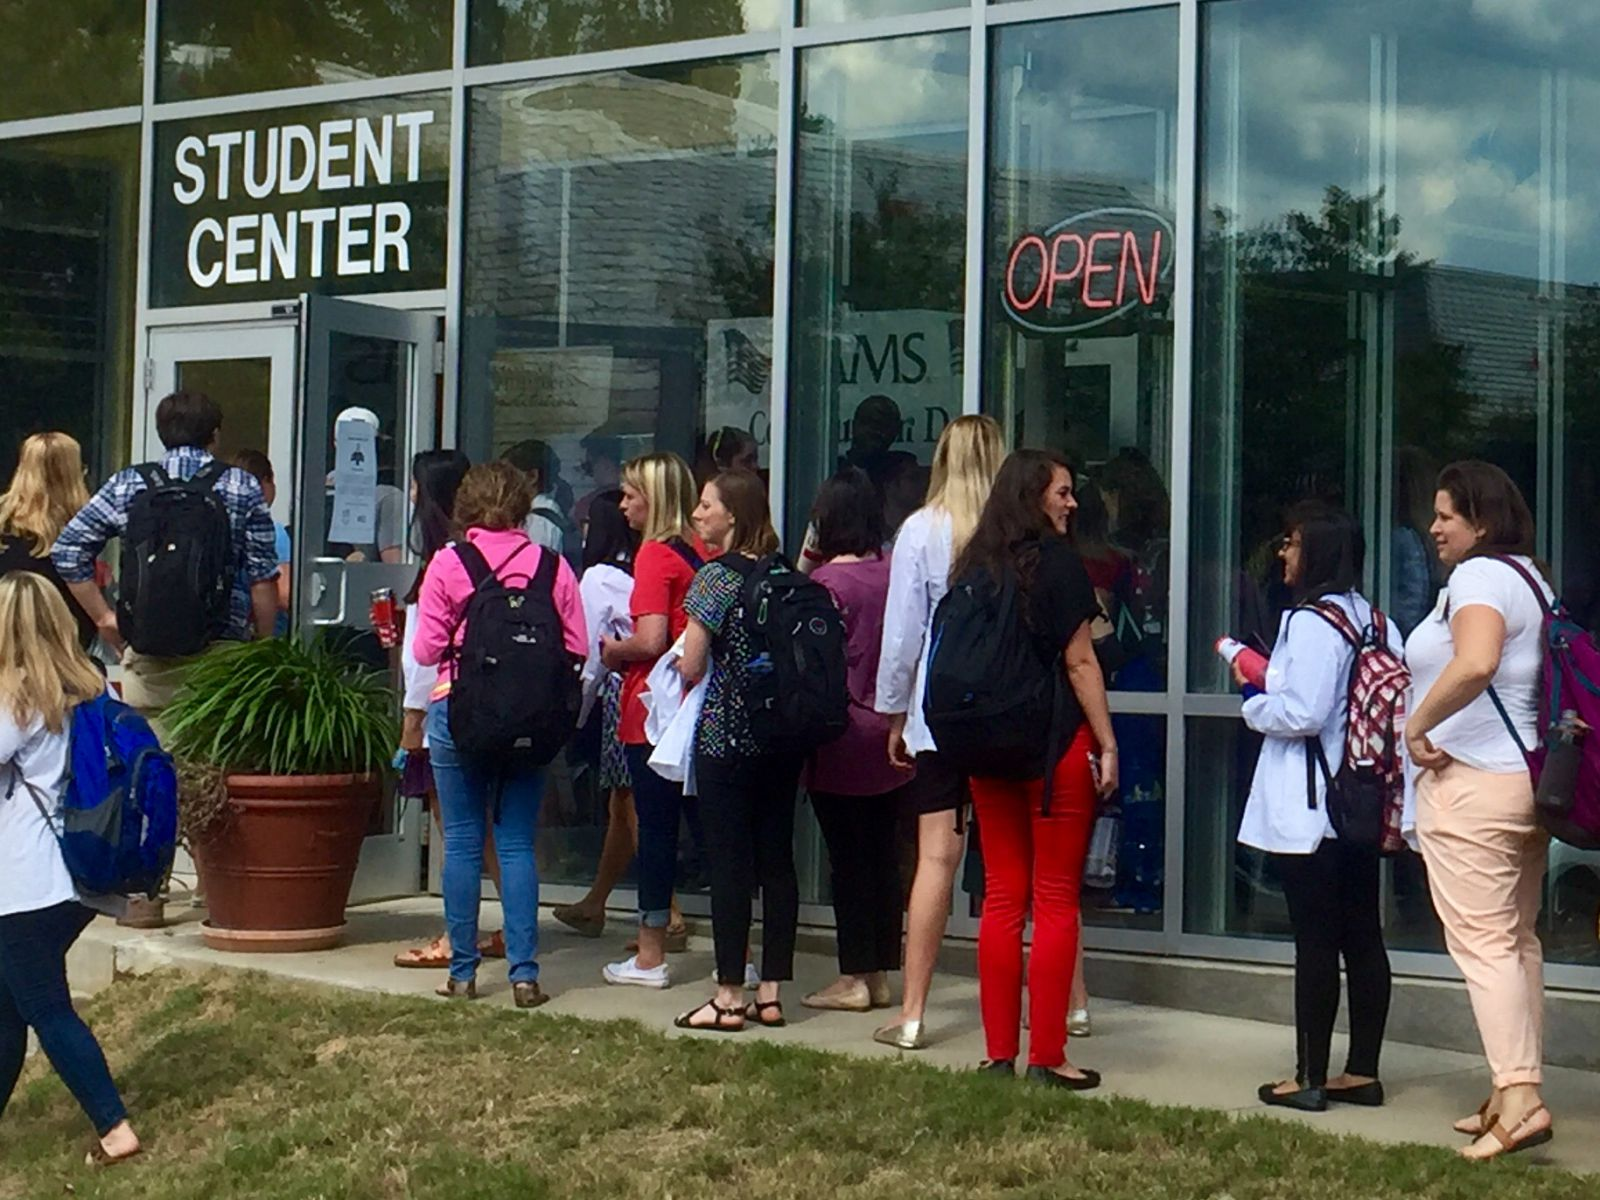 UAMS Student Center Grand Opening